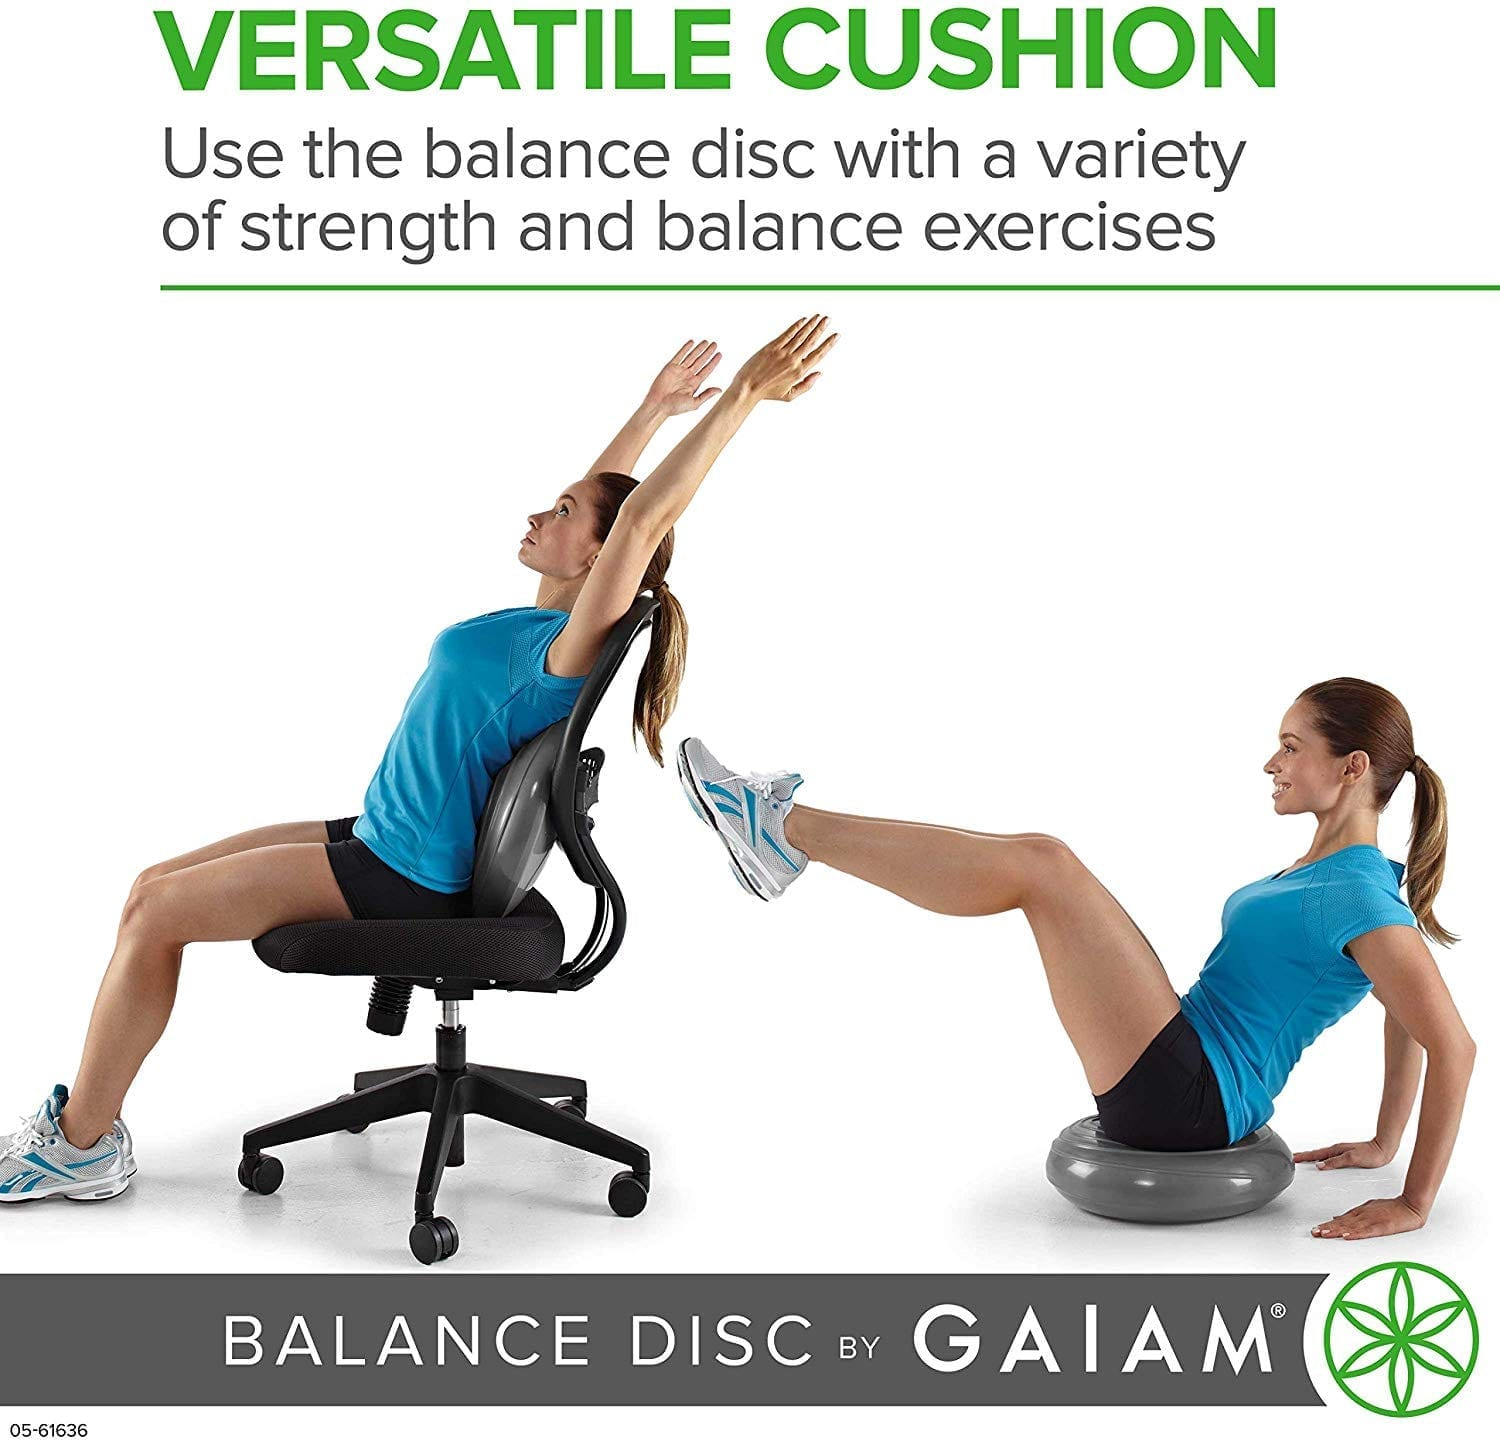 Gaiam Balance Disc Chair